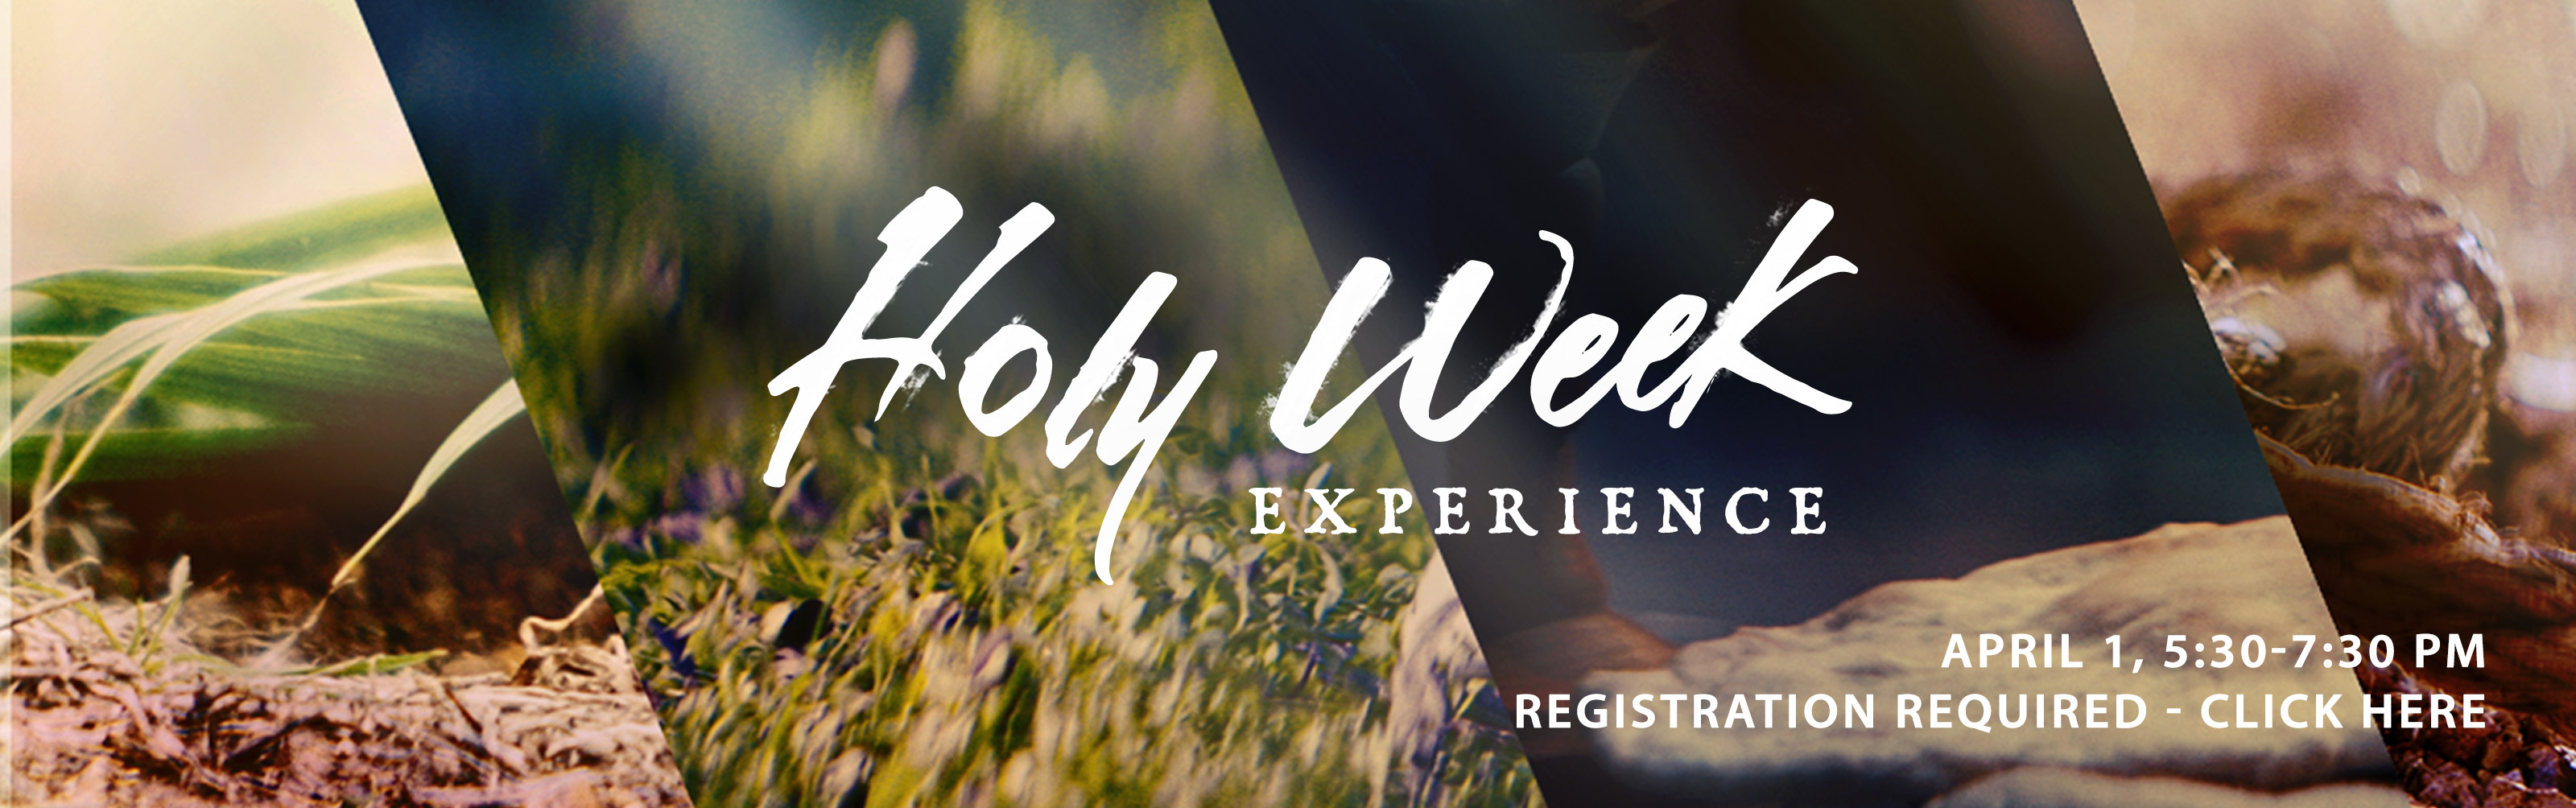 Holy Week Experience_Web_Graphic